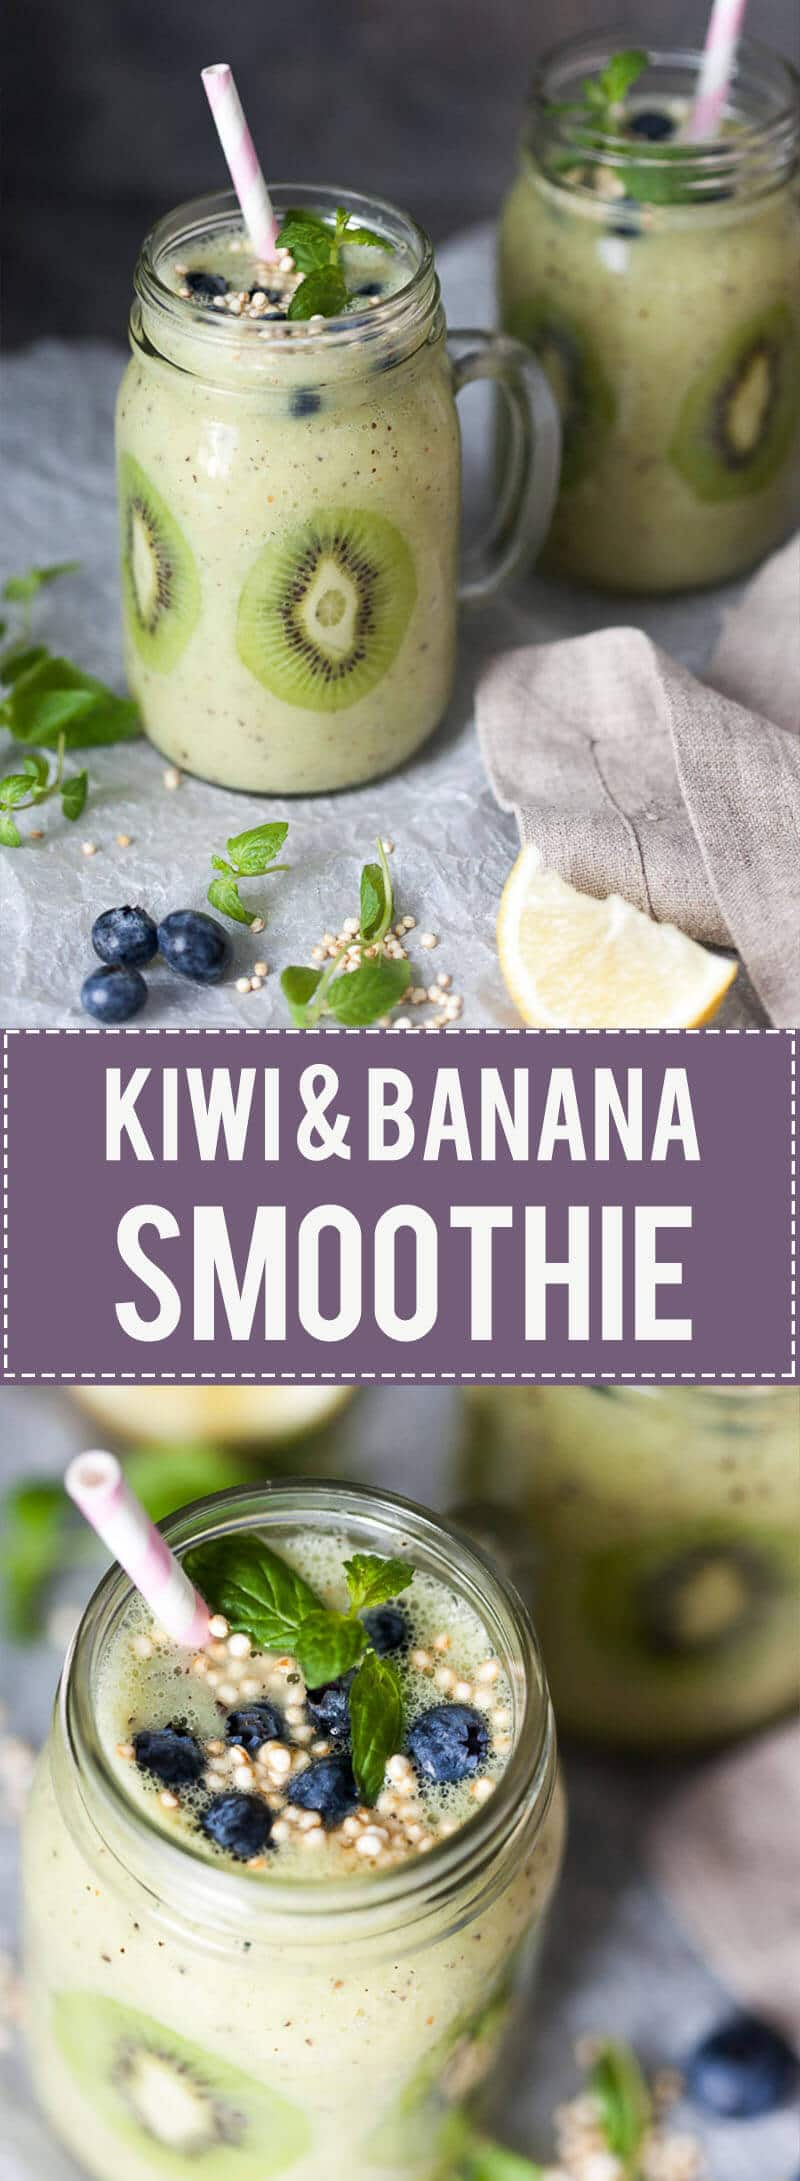 This Kiwi Banana Smoothie with Blueberries looks almost like Spring! Just a couple of minutes and a few ingredients to make.